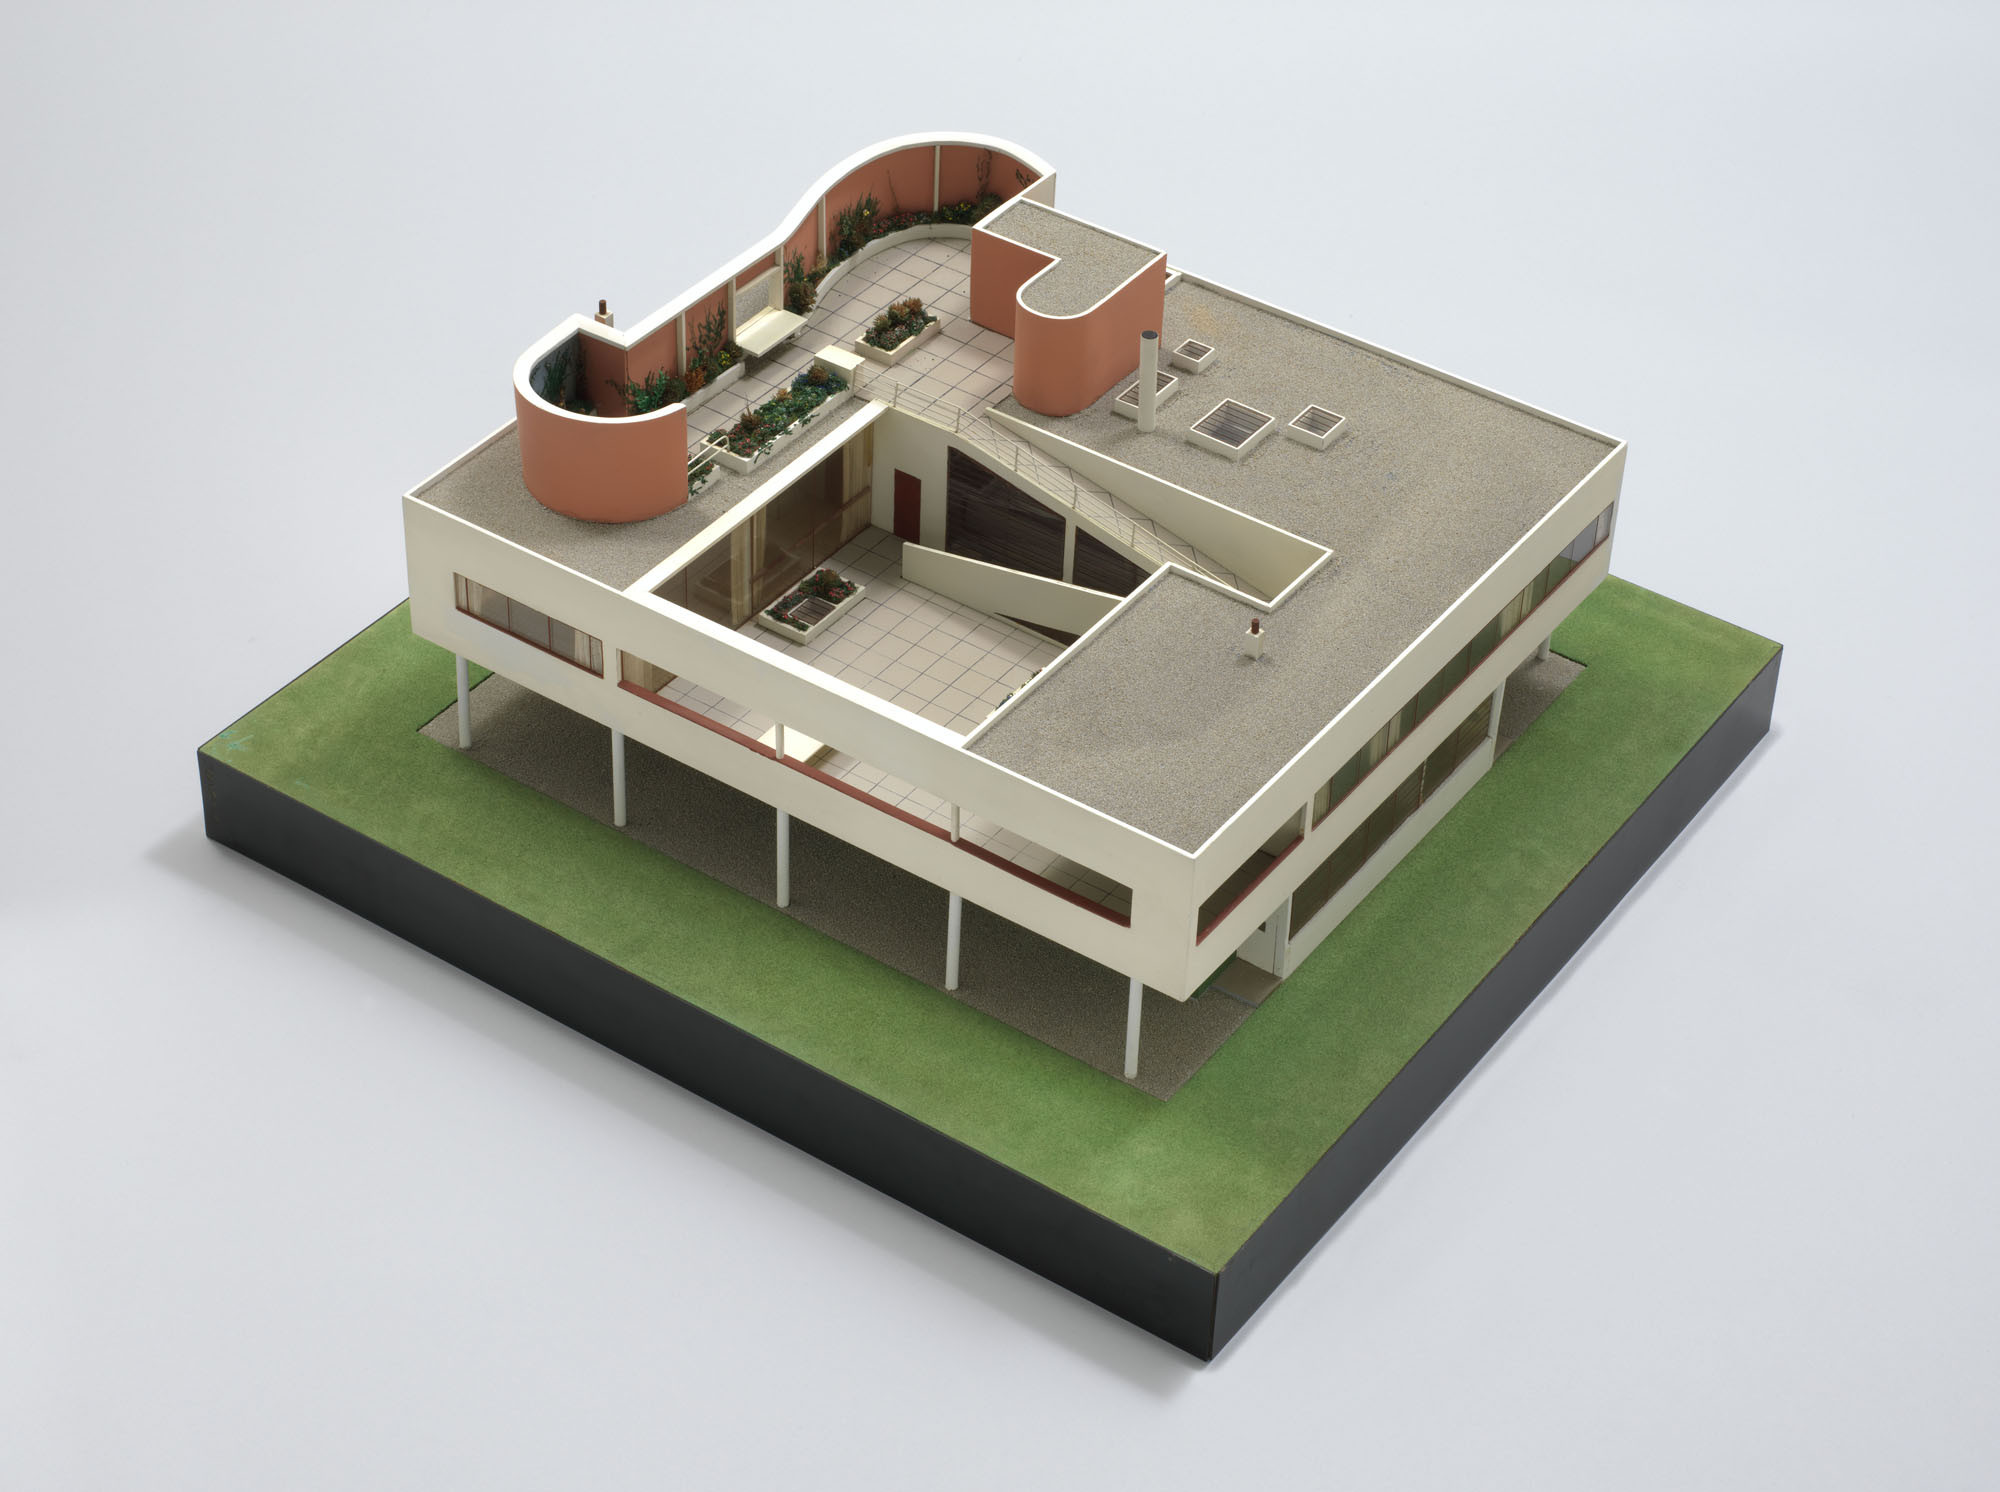 Gallery of MoMA: Le Corbusier: An Atlas of Modern Landscapes - 2